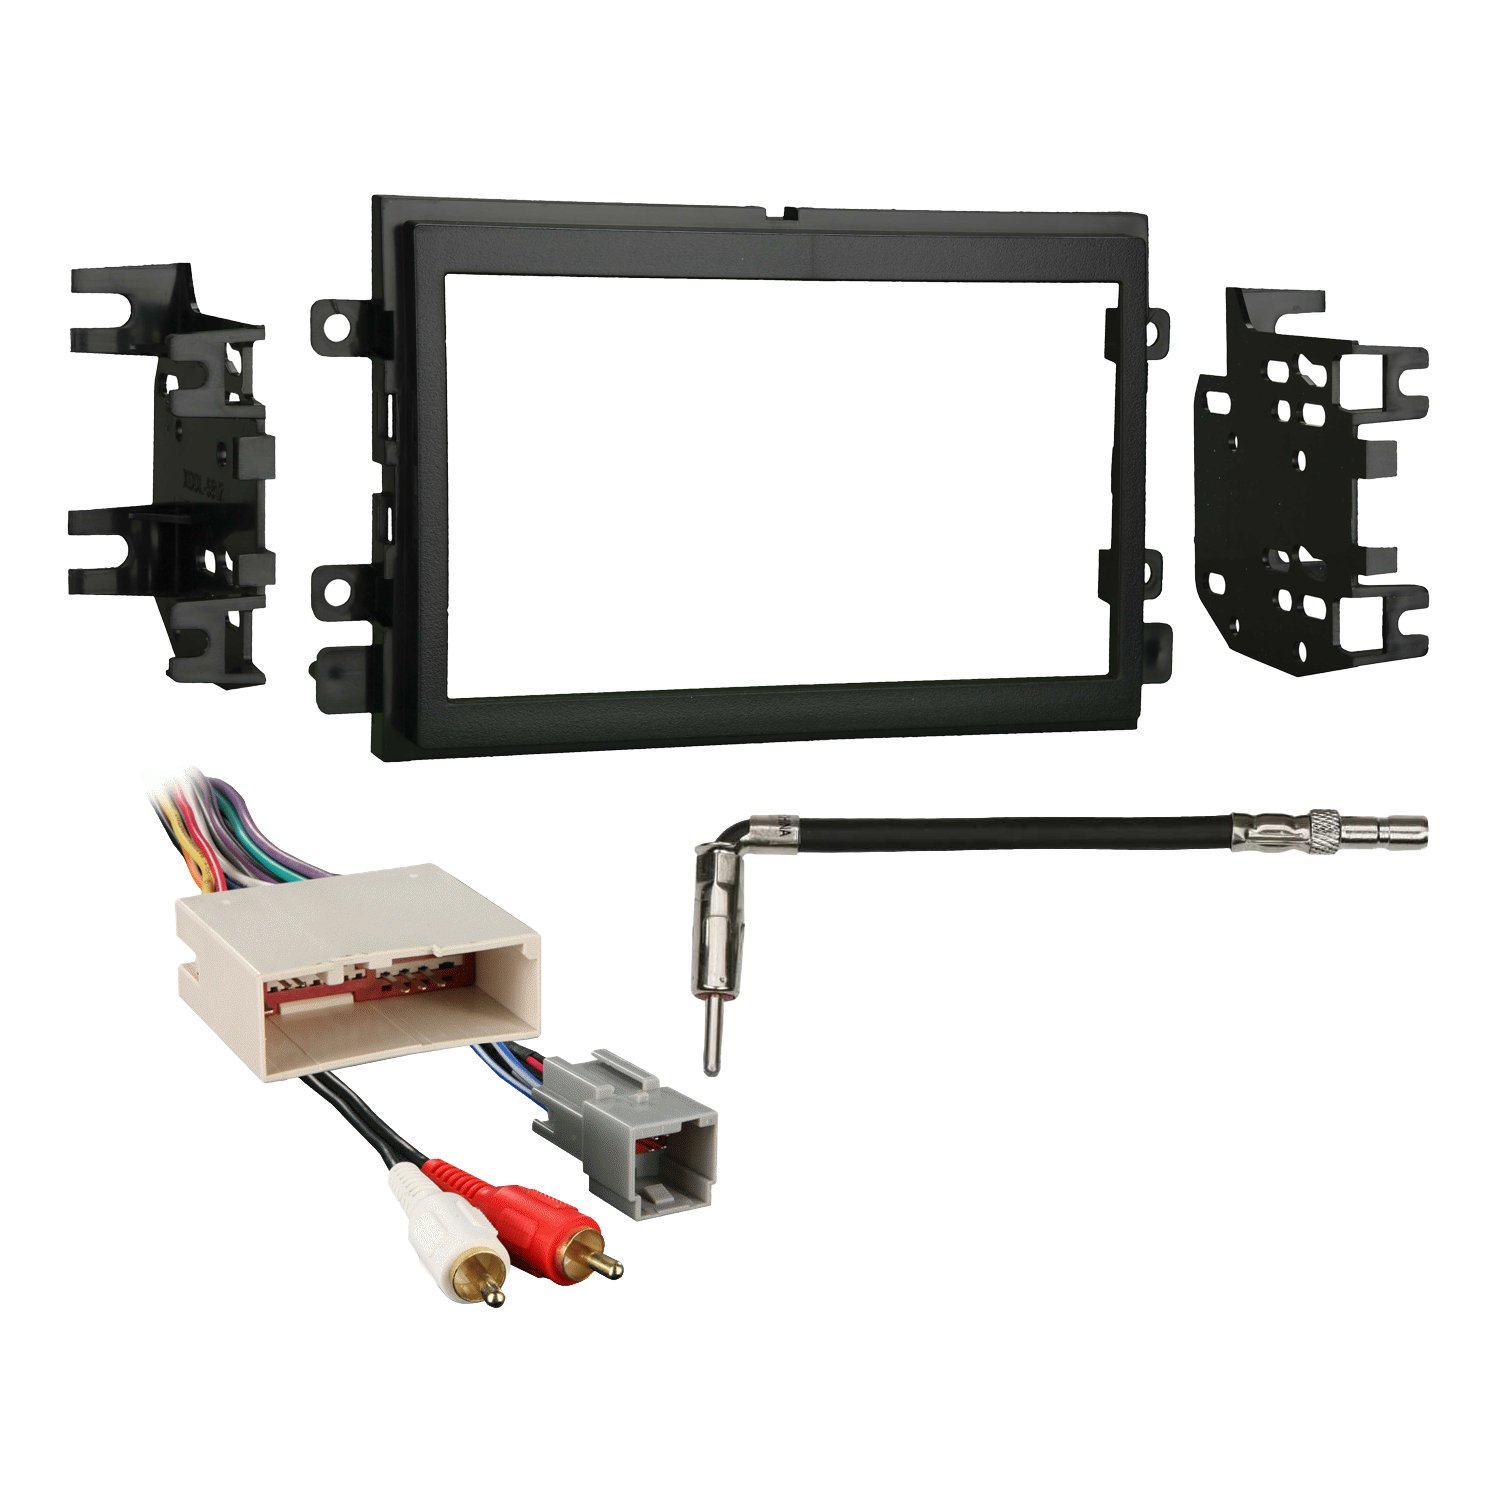 Metra 95-5812 Dash Kit + Amp Harness + Antenna Adapter for Select Ford/Mercury